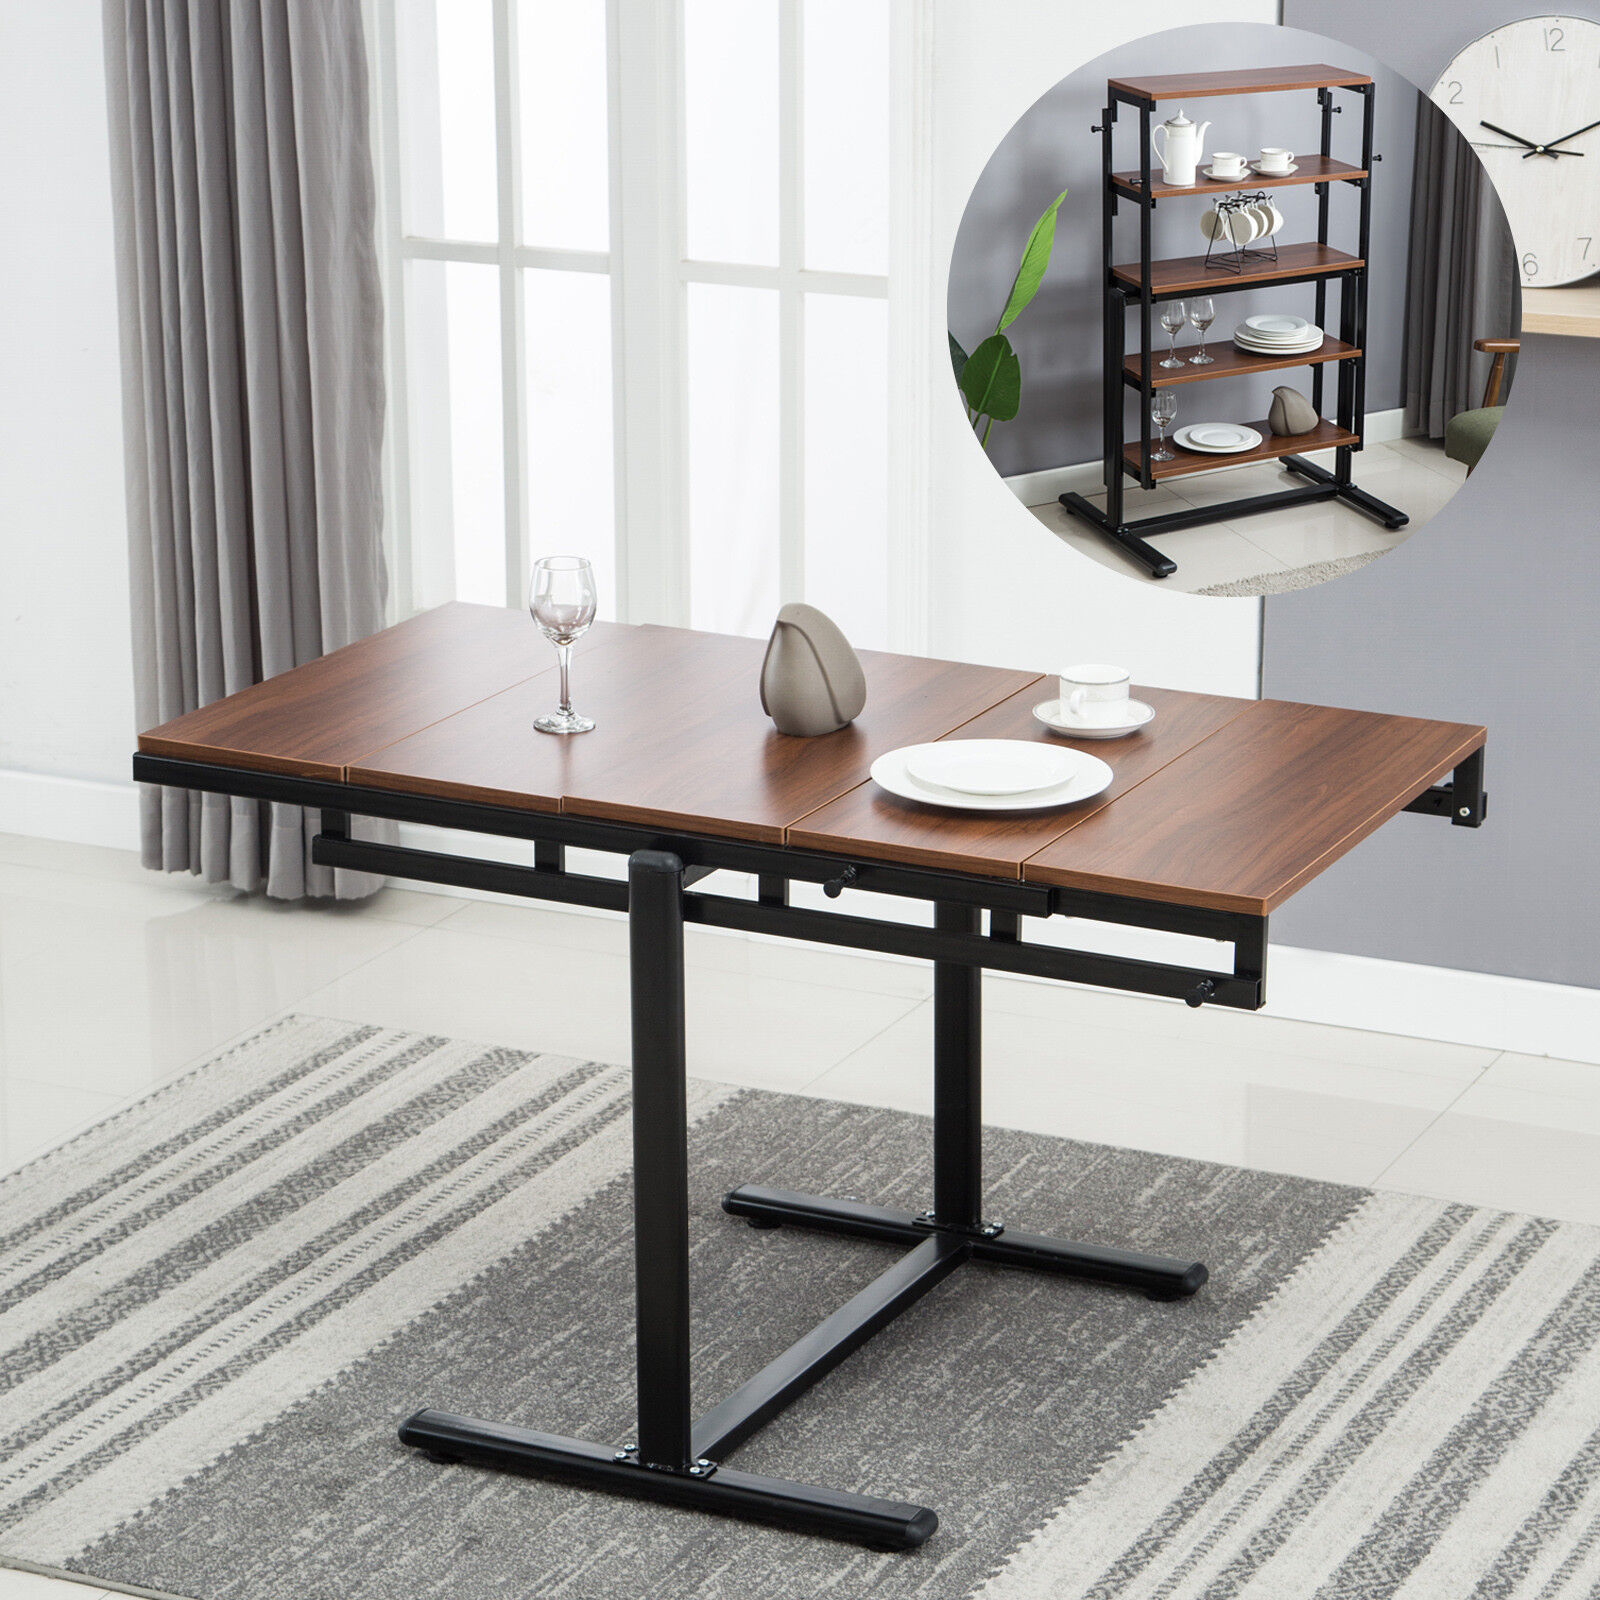 2in1 Folding Wooden Dining Table 5-Tier Bookcase Shelf Kitch